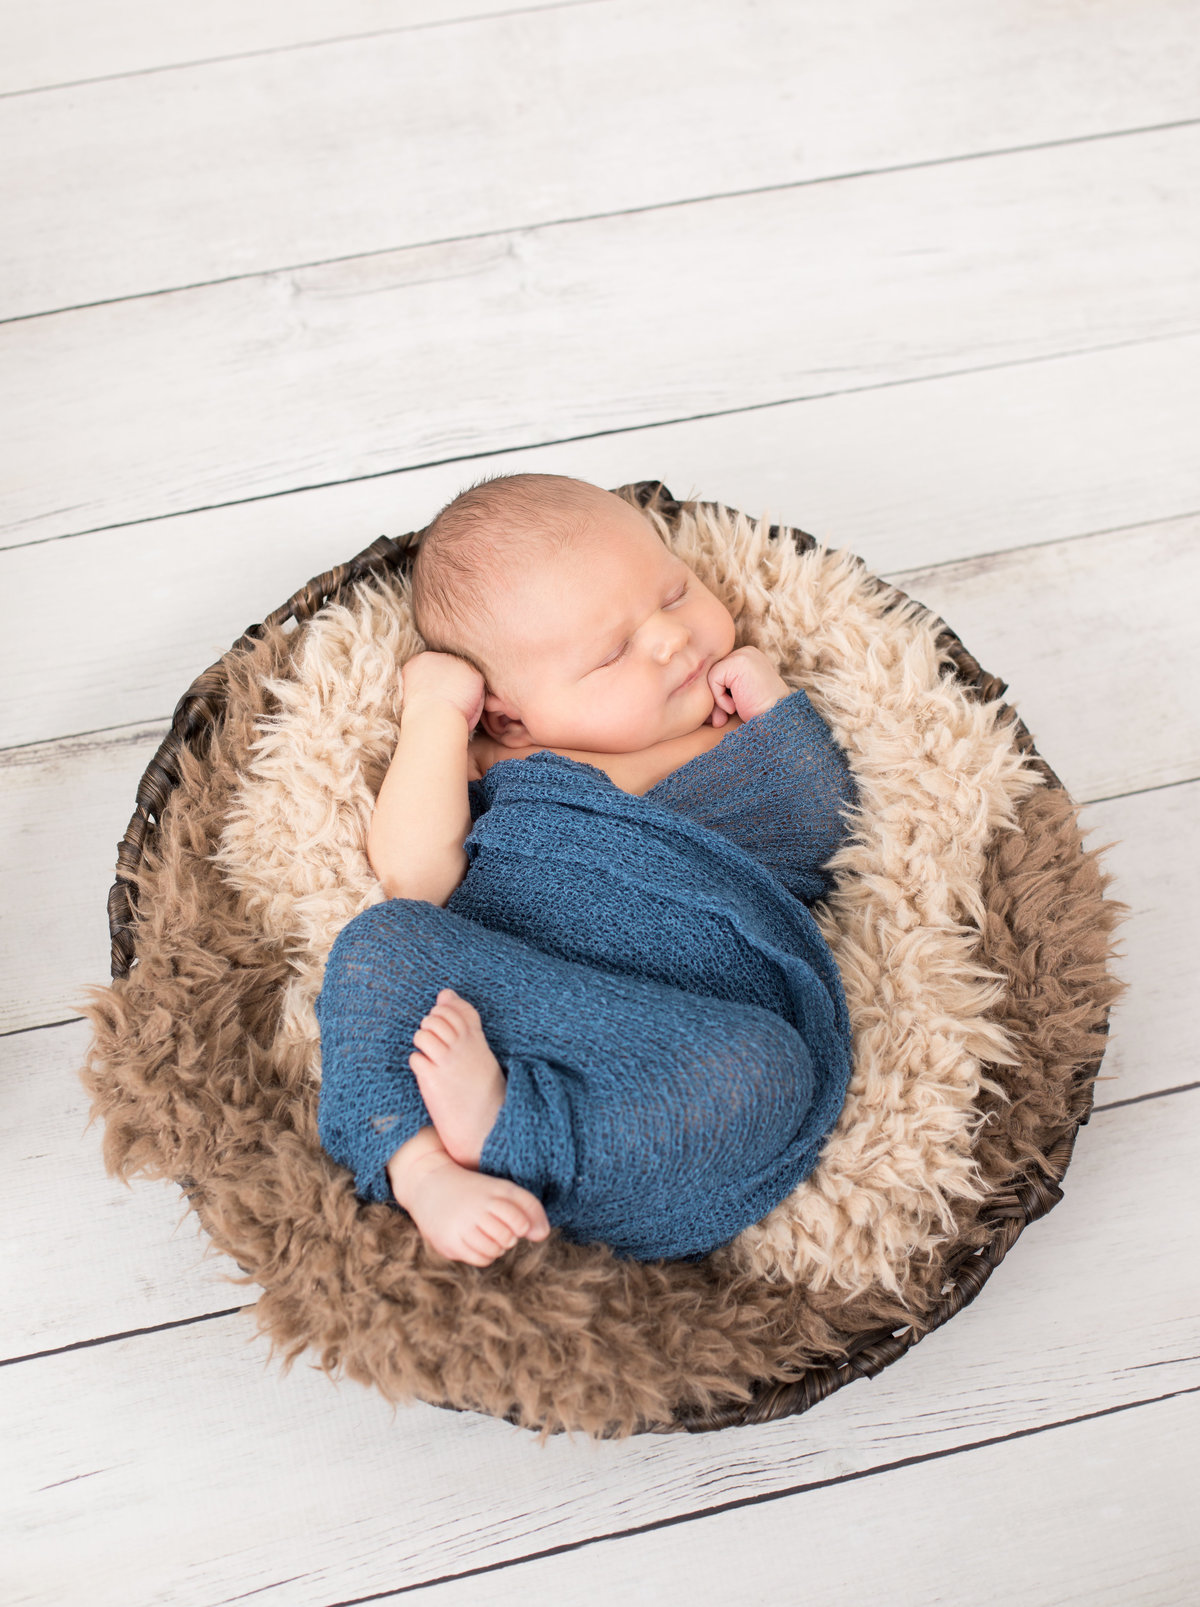 Newborn boy in blue wrap on a furry blanket in a round dark brown basket on a white wood floor